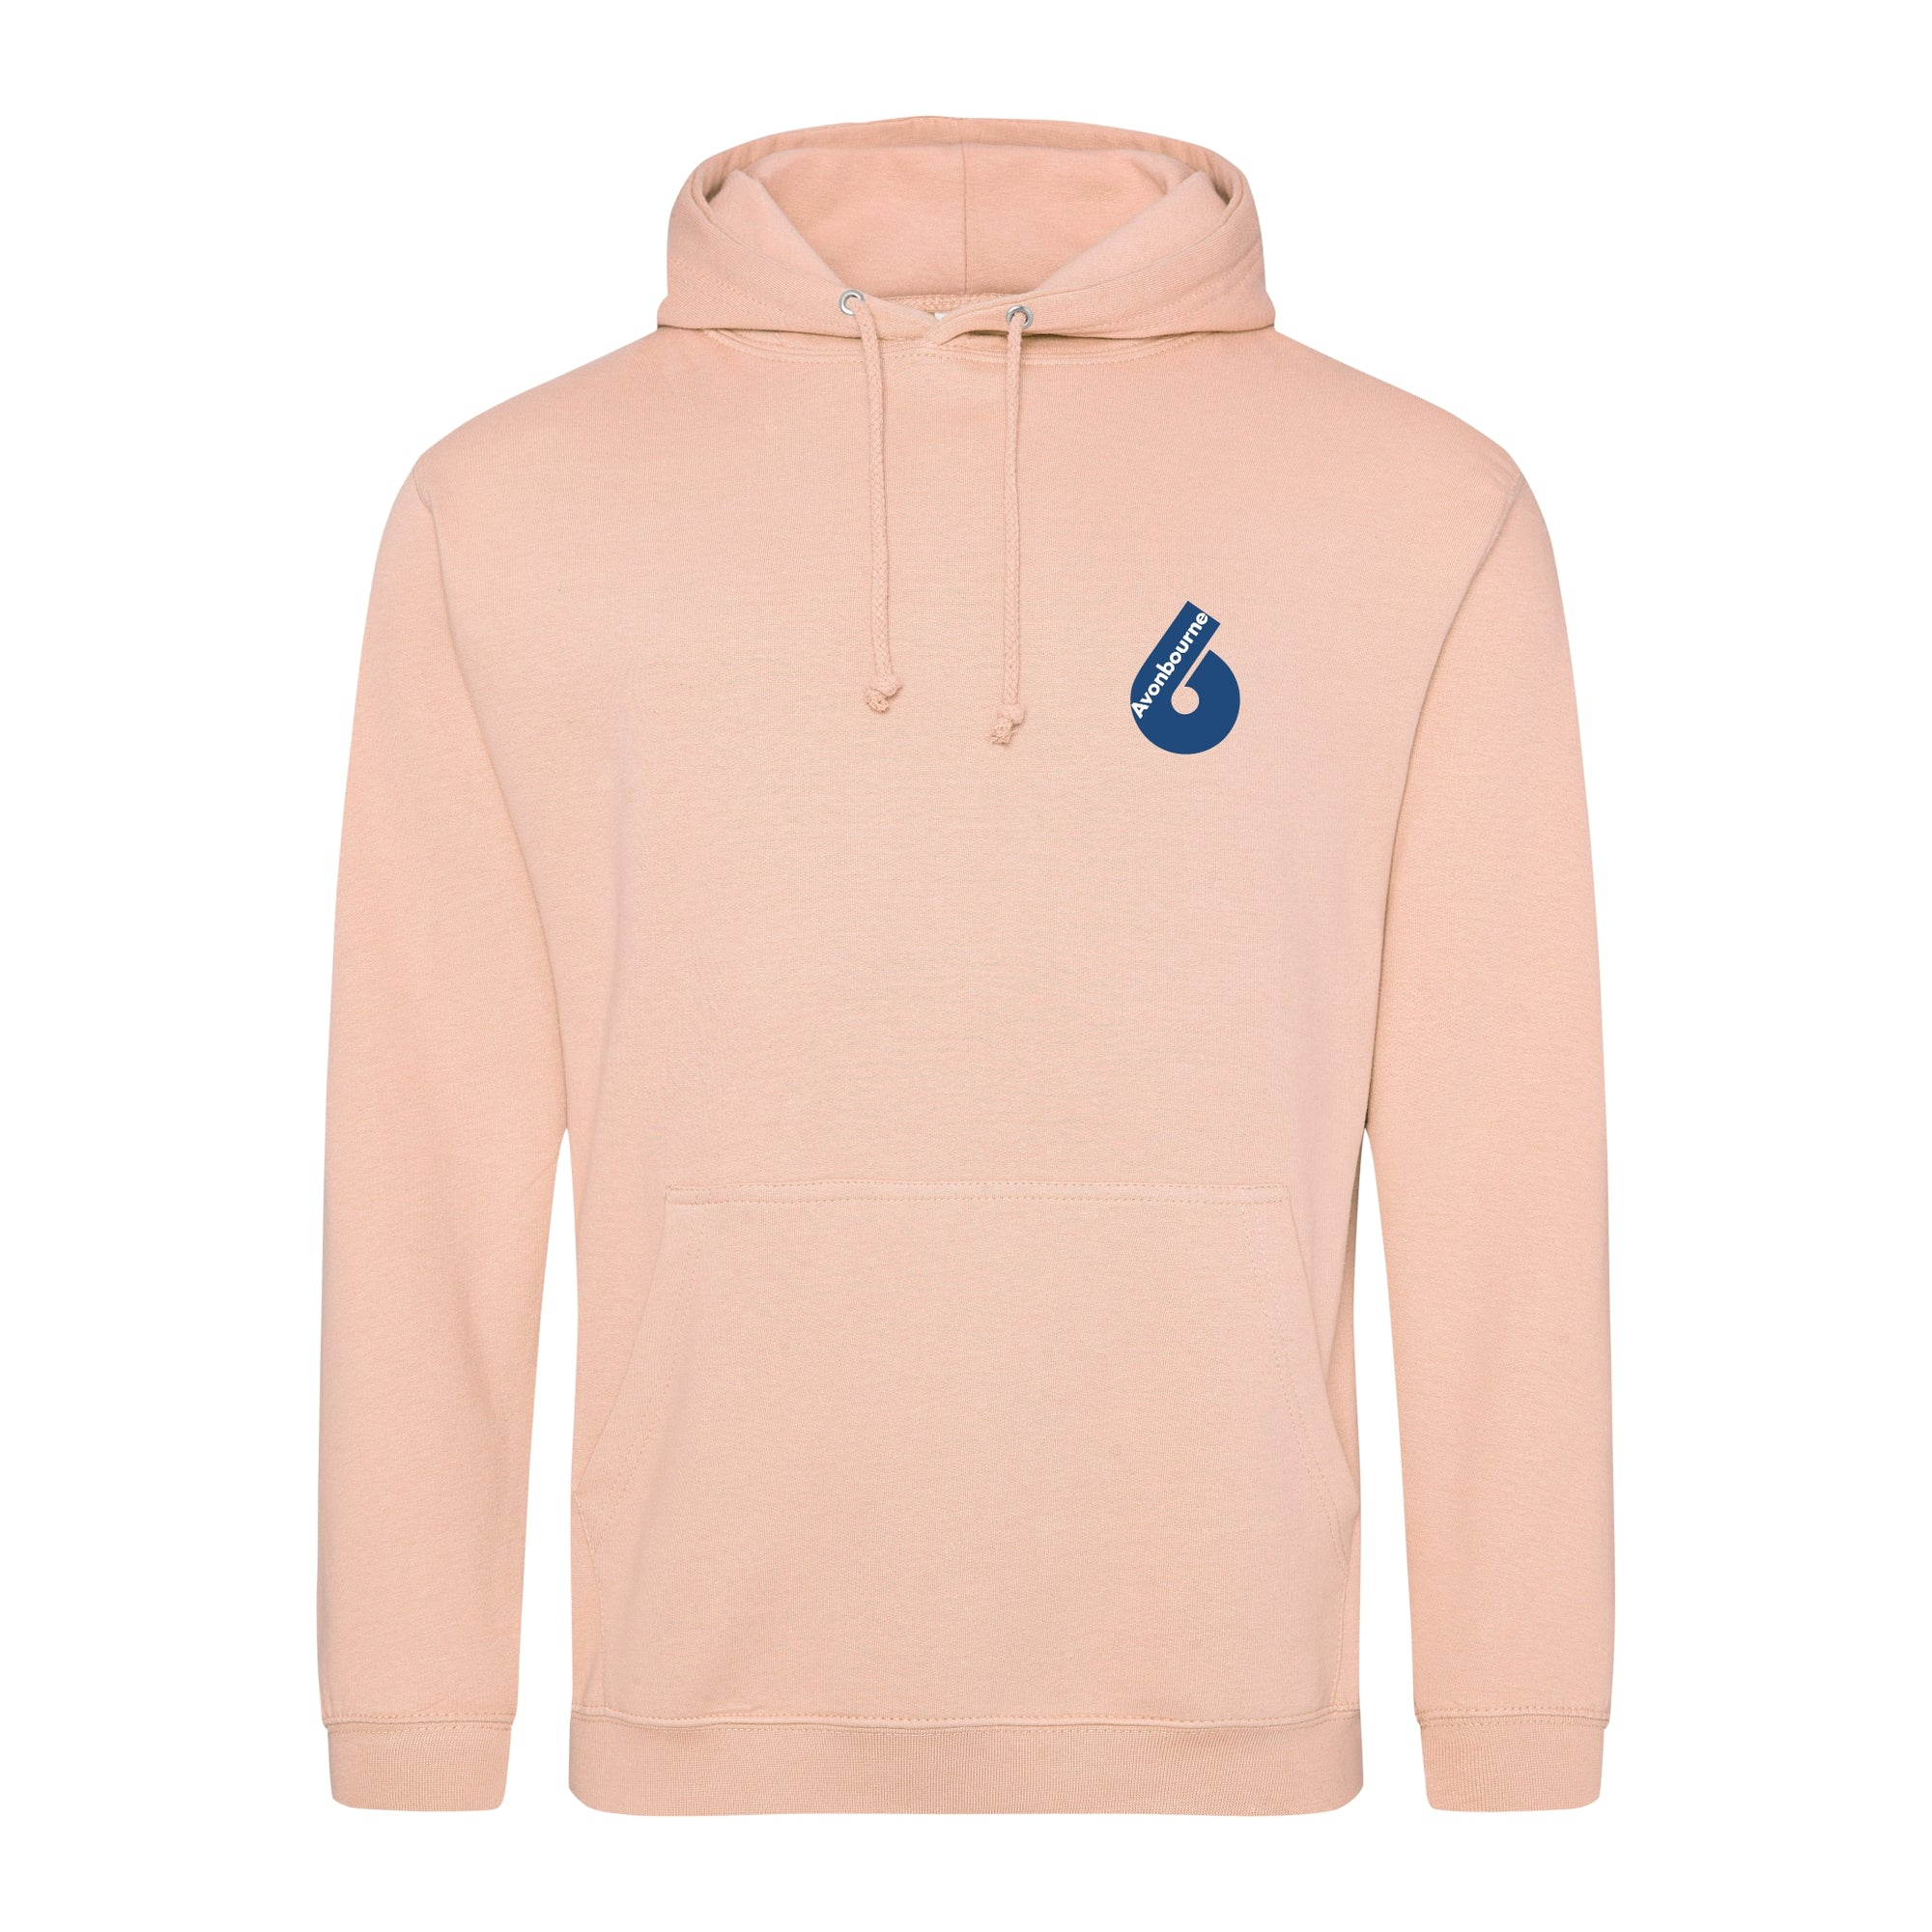 Avonbourne 6th Form Leavers Hoody 2019 - Peach